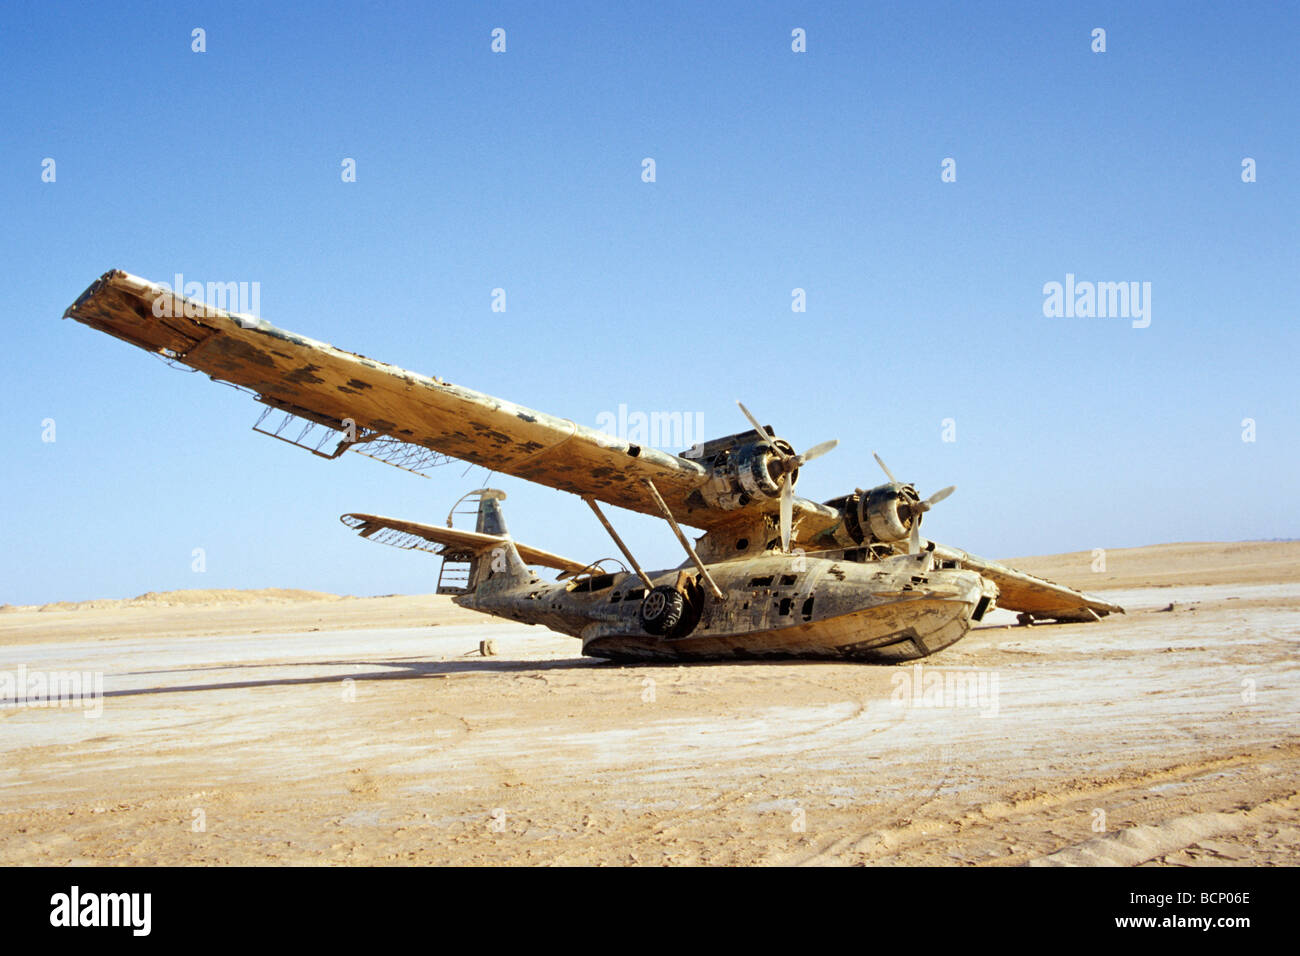 Saudi Arabia Nefud Desert Stock Photo Royalty Free Image